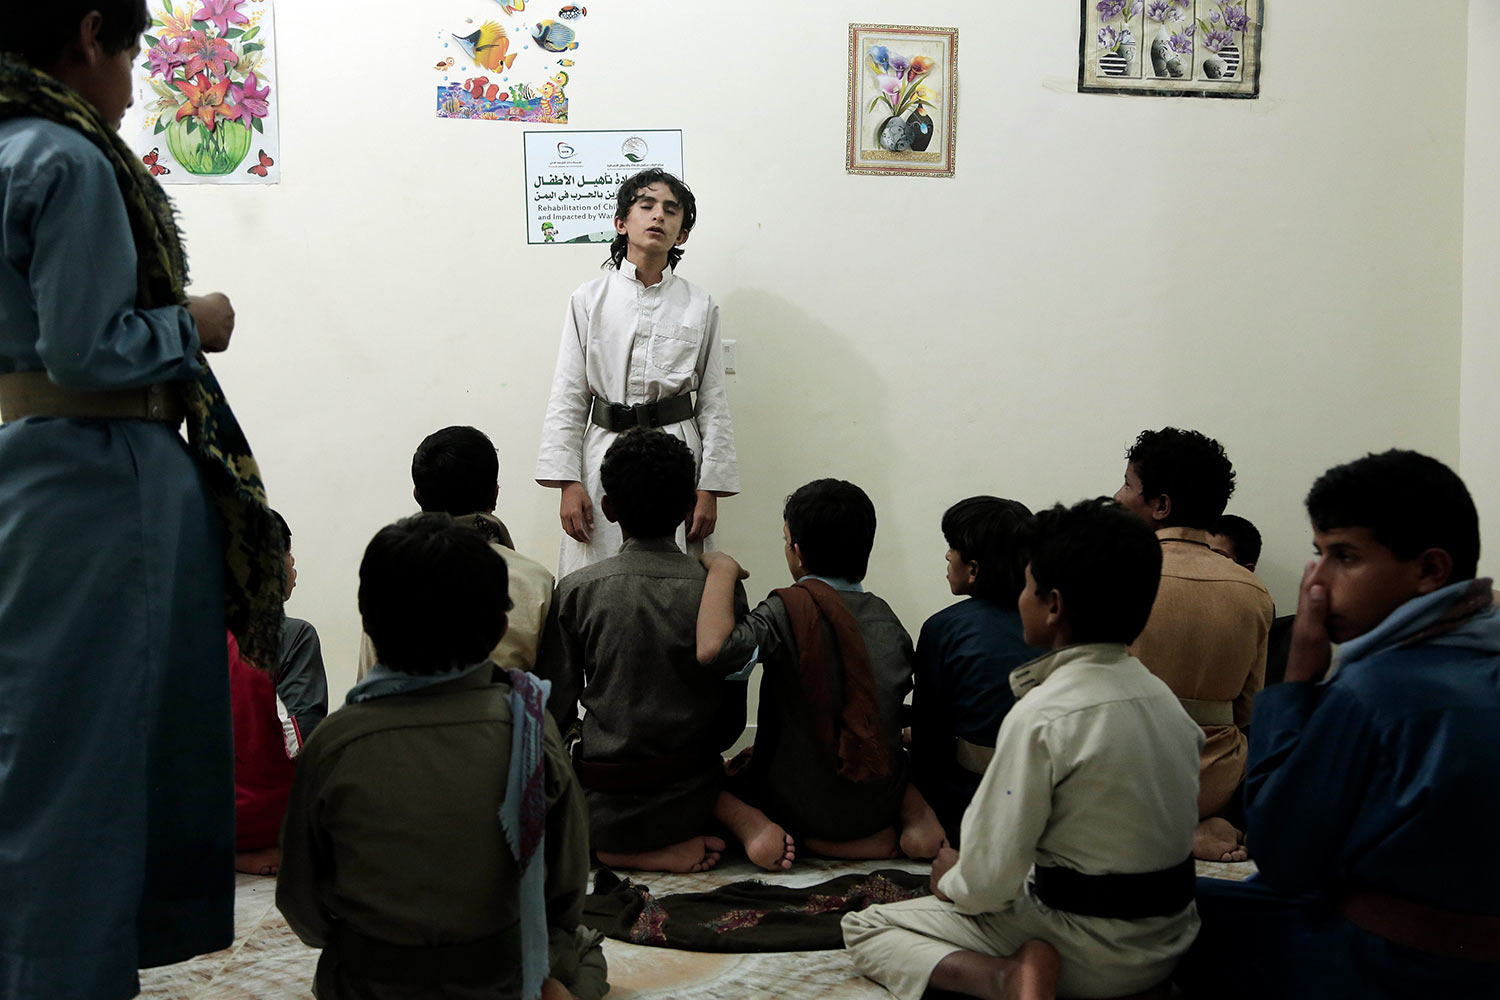 Boys recite poems during a session at a rehabilitation center for former child soldiers in Marib, Yemen, in this July 25, 2018, photo. (AP Photo/Nariman El-Mofty)